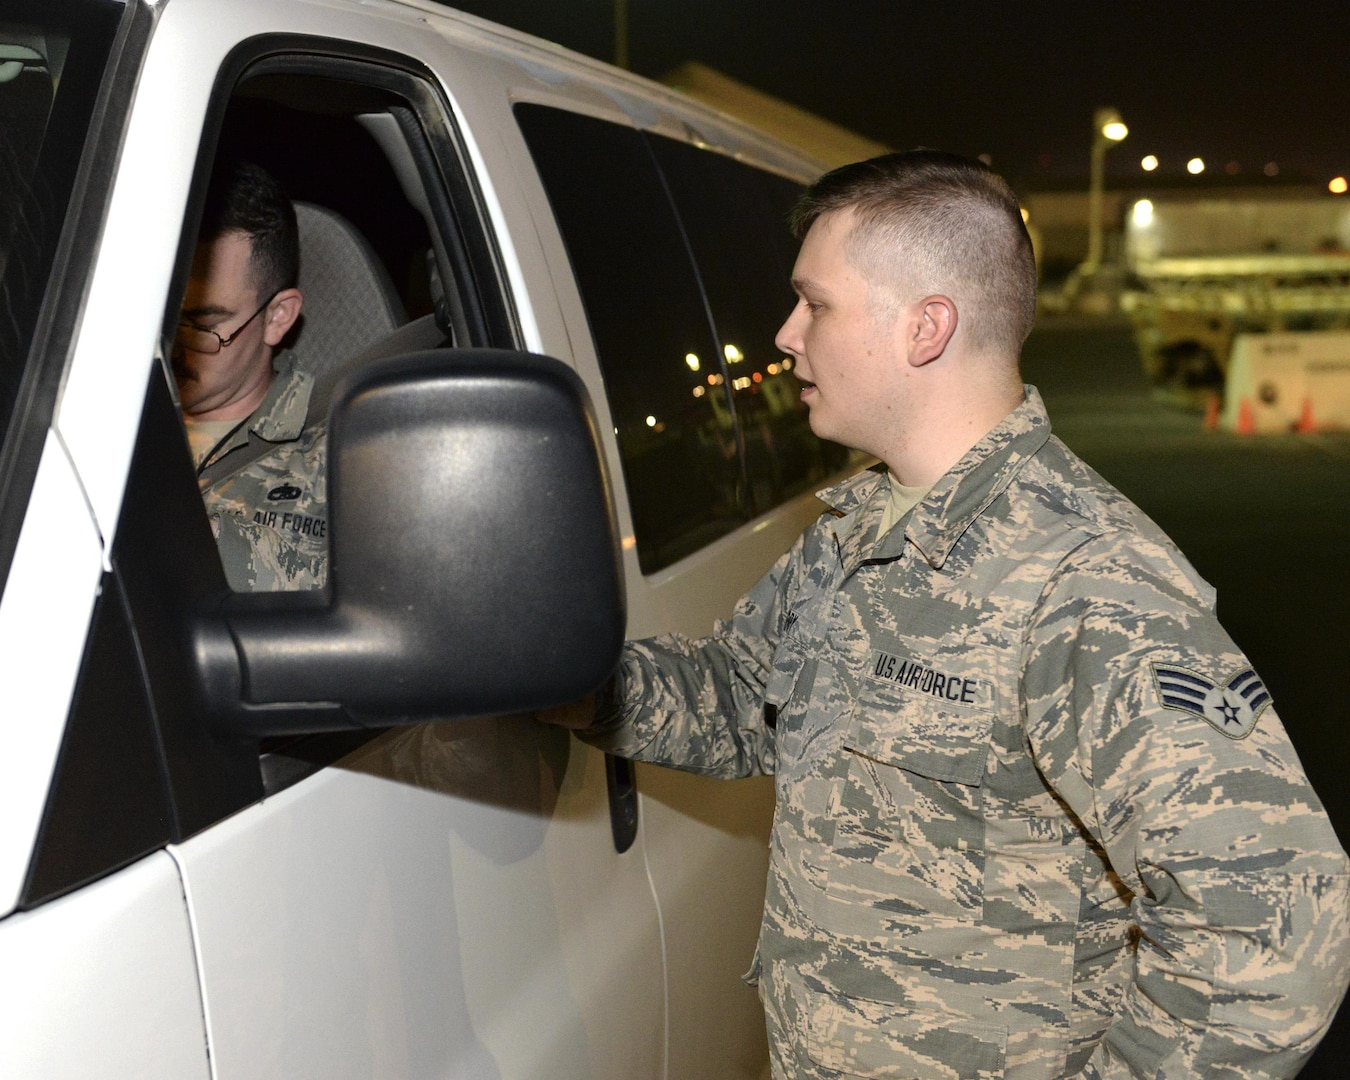 U.S. Air Force Senior Airman William Terry, airfield management shift lead assigned to the 379th Expeditionary Office of Strategic Services, asks to see an Airman's airfield drivers license during a random check conducted on the runway at Al Udeid, Air Force Base, Qatar, June 22, 2017. Airfield Management oversees more than 20 million square feet of airfield at Al Udeid in addition to overseeing the airfield driving program and filing all flight plans for flights arriving to and departing from the base. (U.S. Air National Guard photo by Tech. Sgt. Bradly A. Schneider/Released)